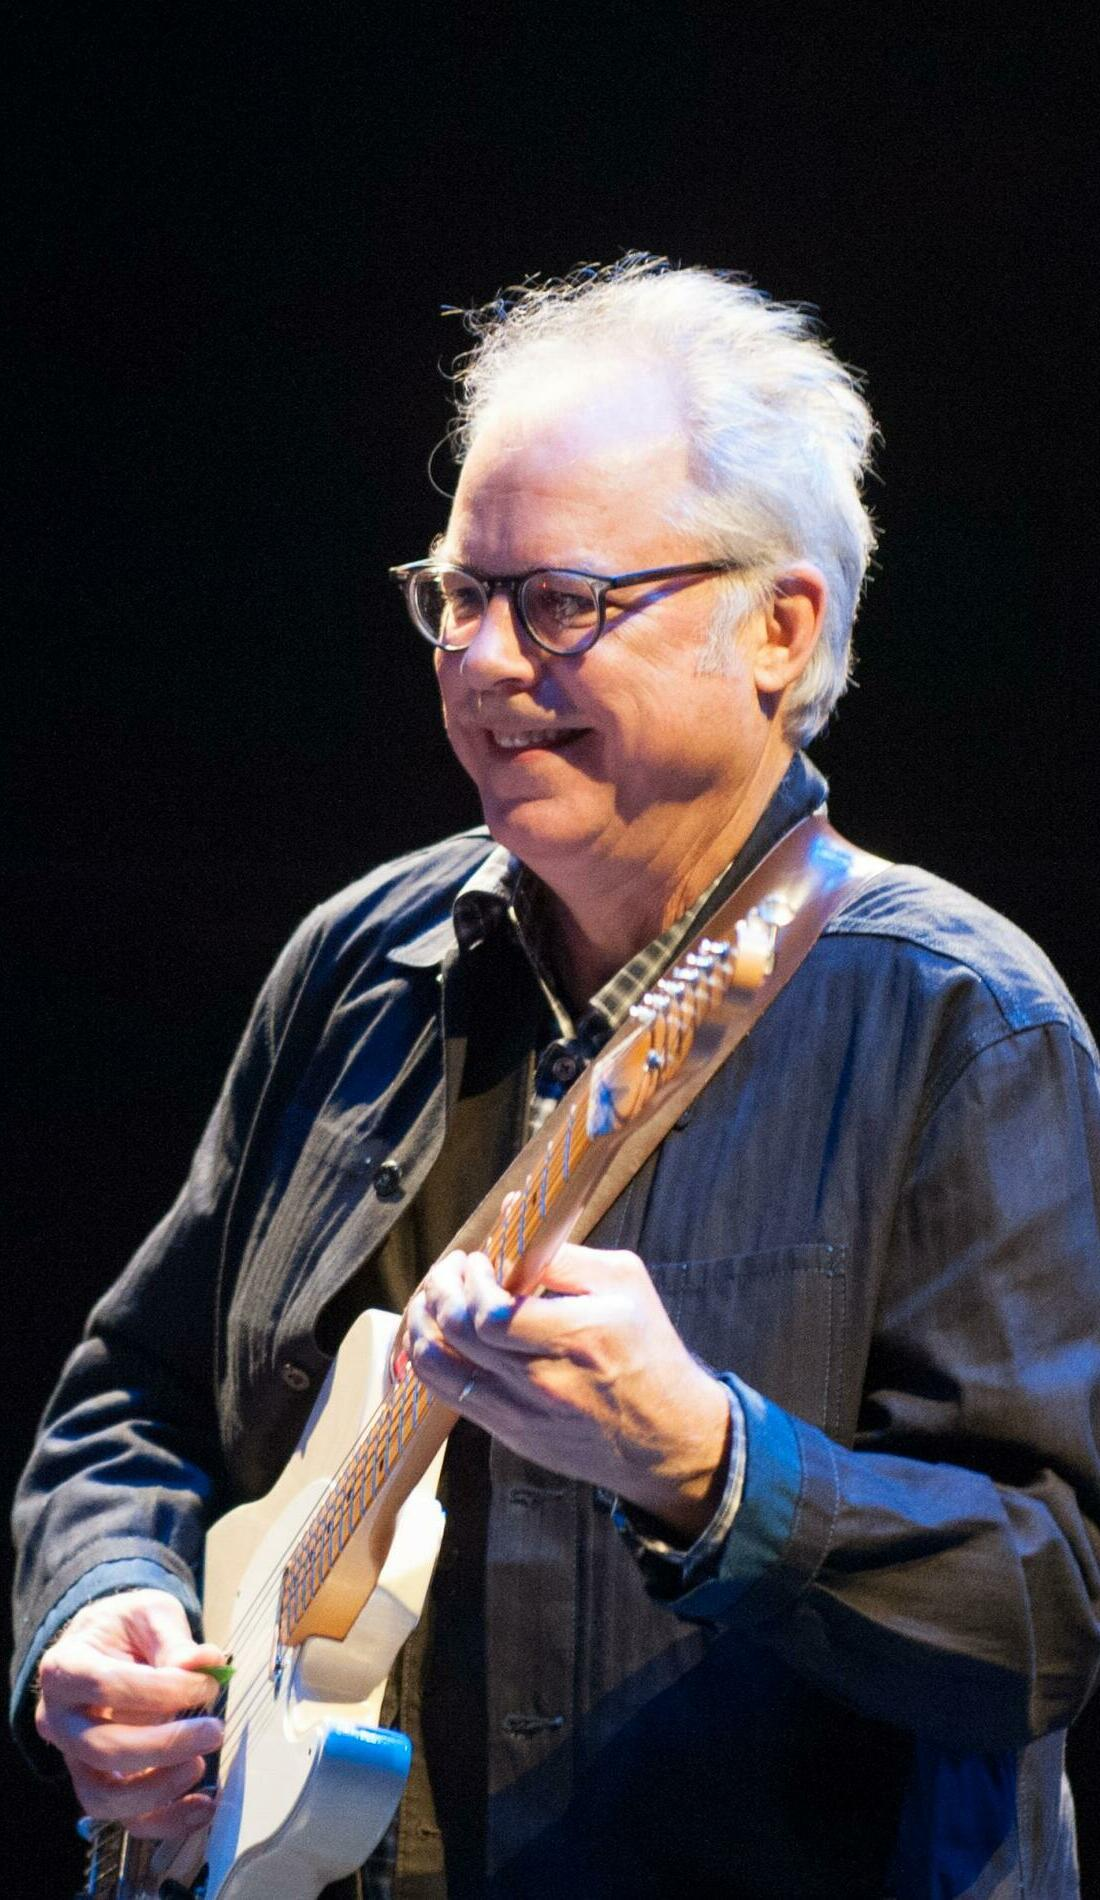 A Bill Frisell live event